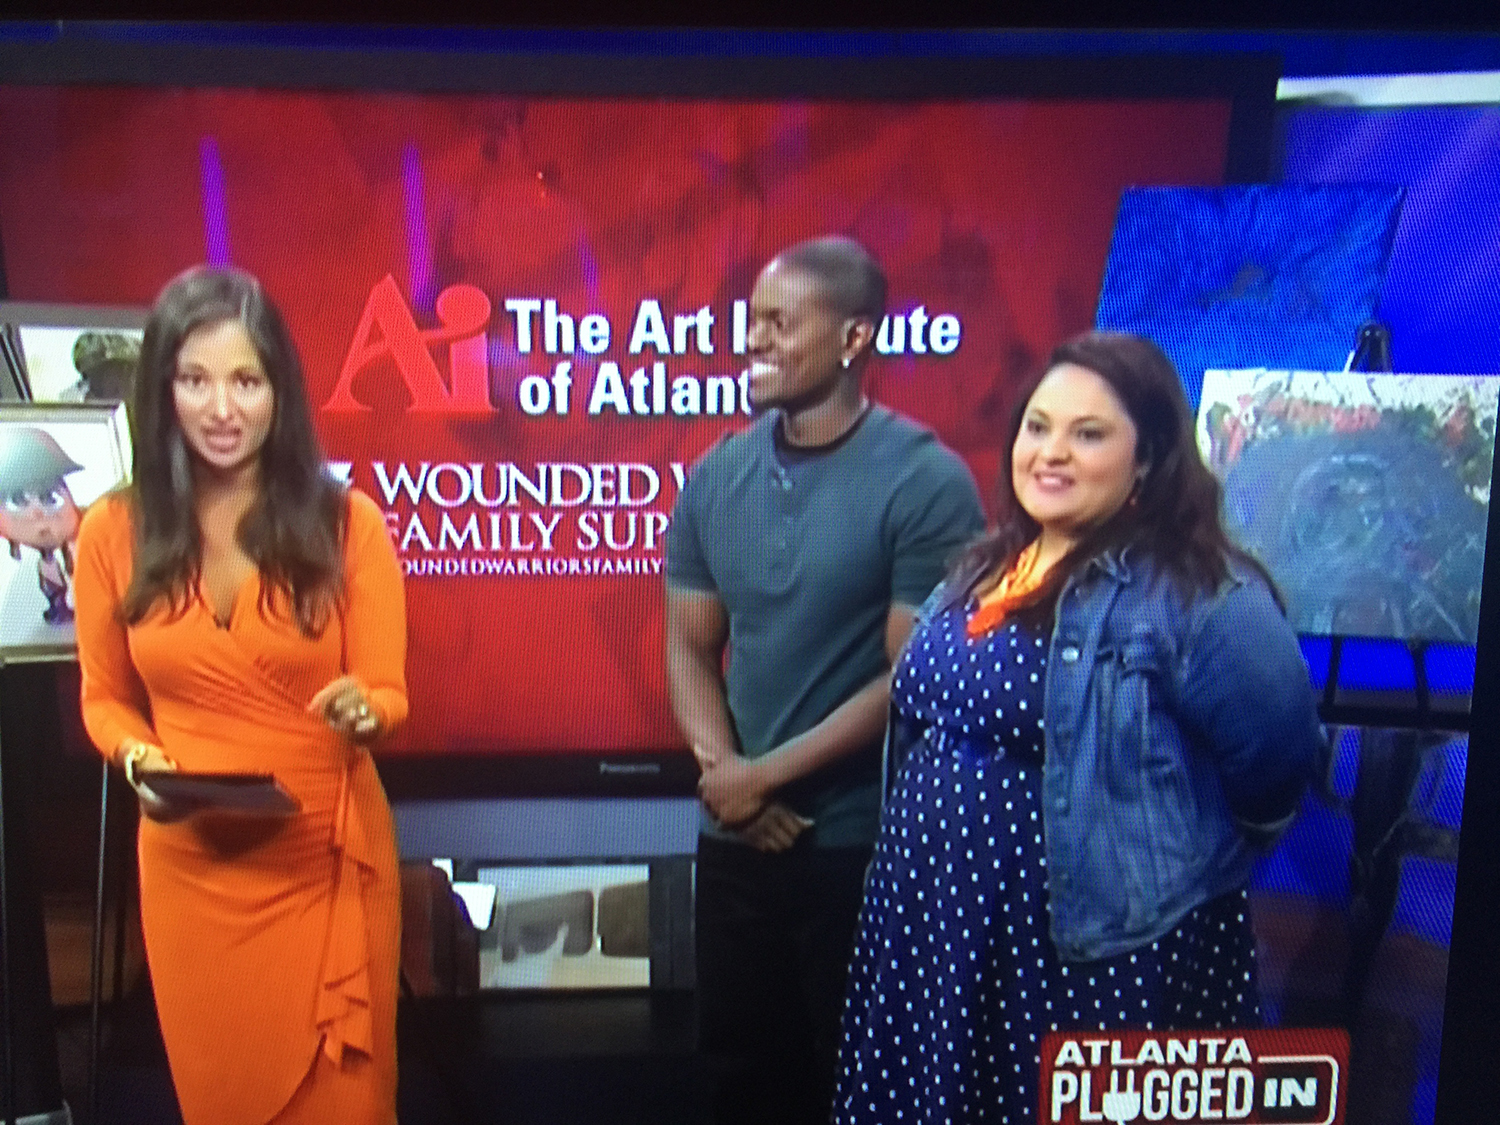 Atlanta Plugged In (CBS46) - Joshua Leonard and colleague Bianca Simmons speaking about the Wounded Warrior Gala at The Art Institute of Atlanta in 2016.